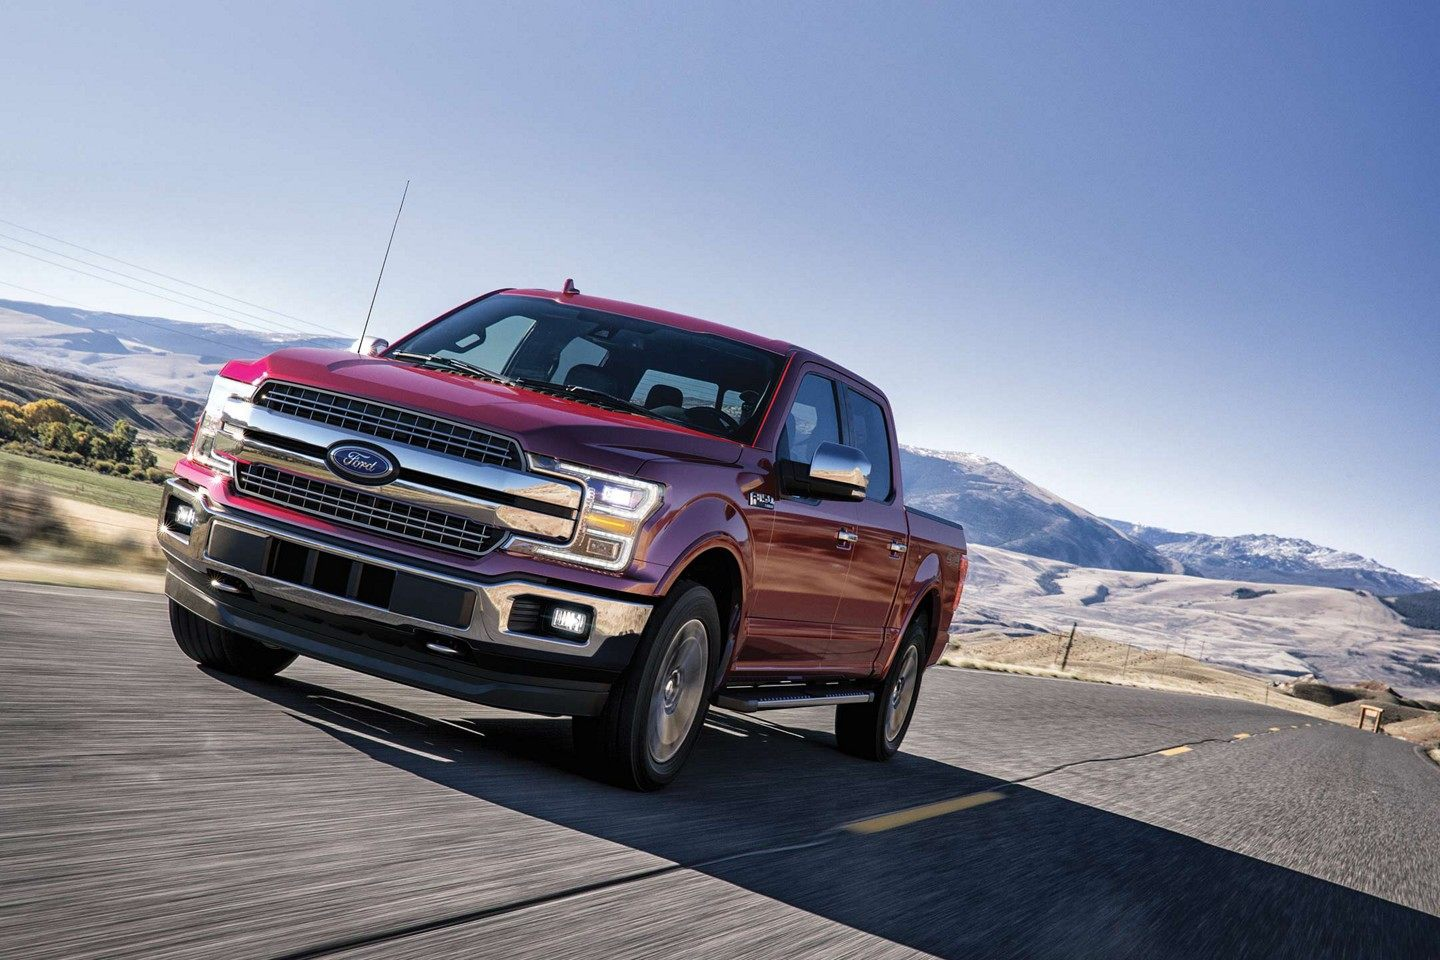 Elk Grove Ford Explores Engine Options for Ford F-150